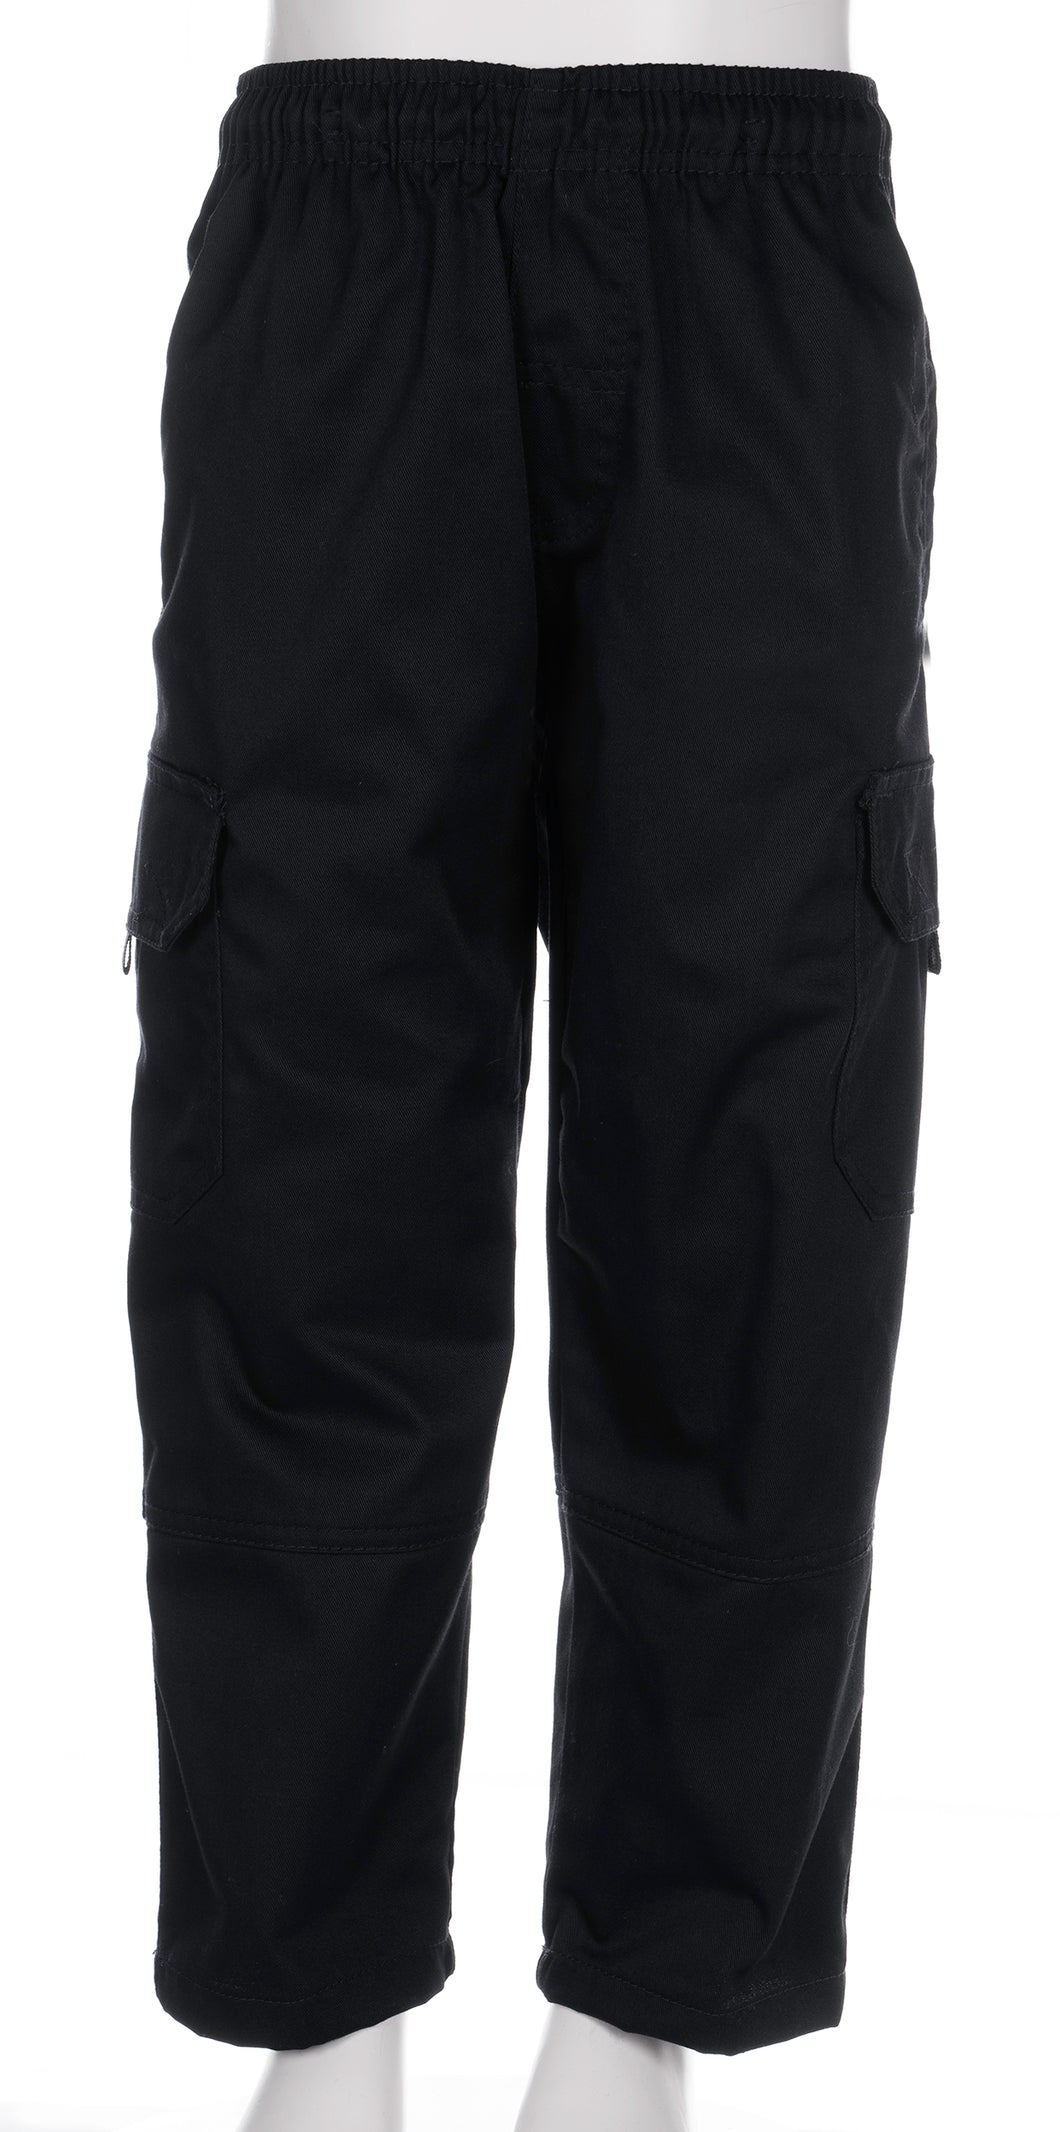 Silverdale School - Cargo Pants Black